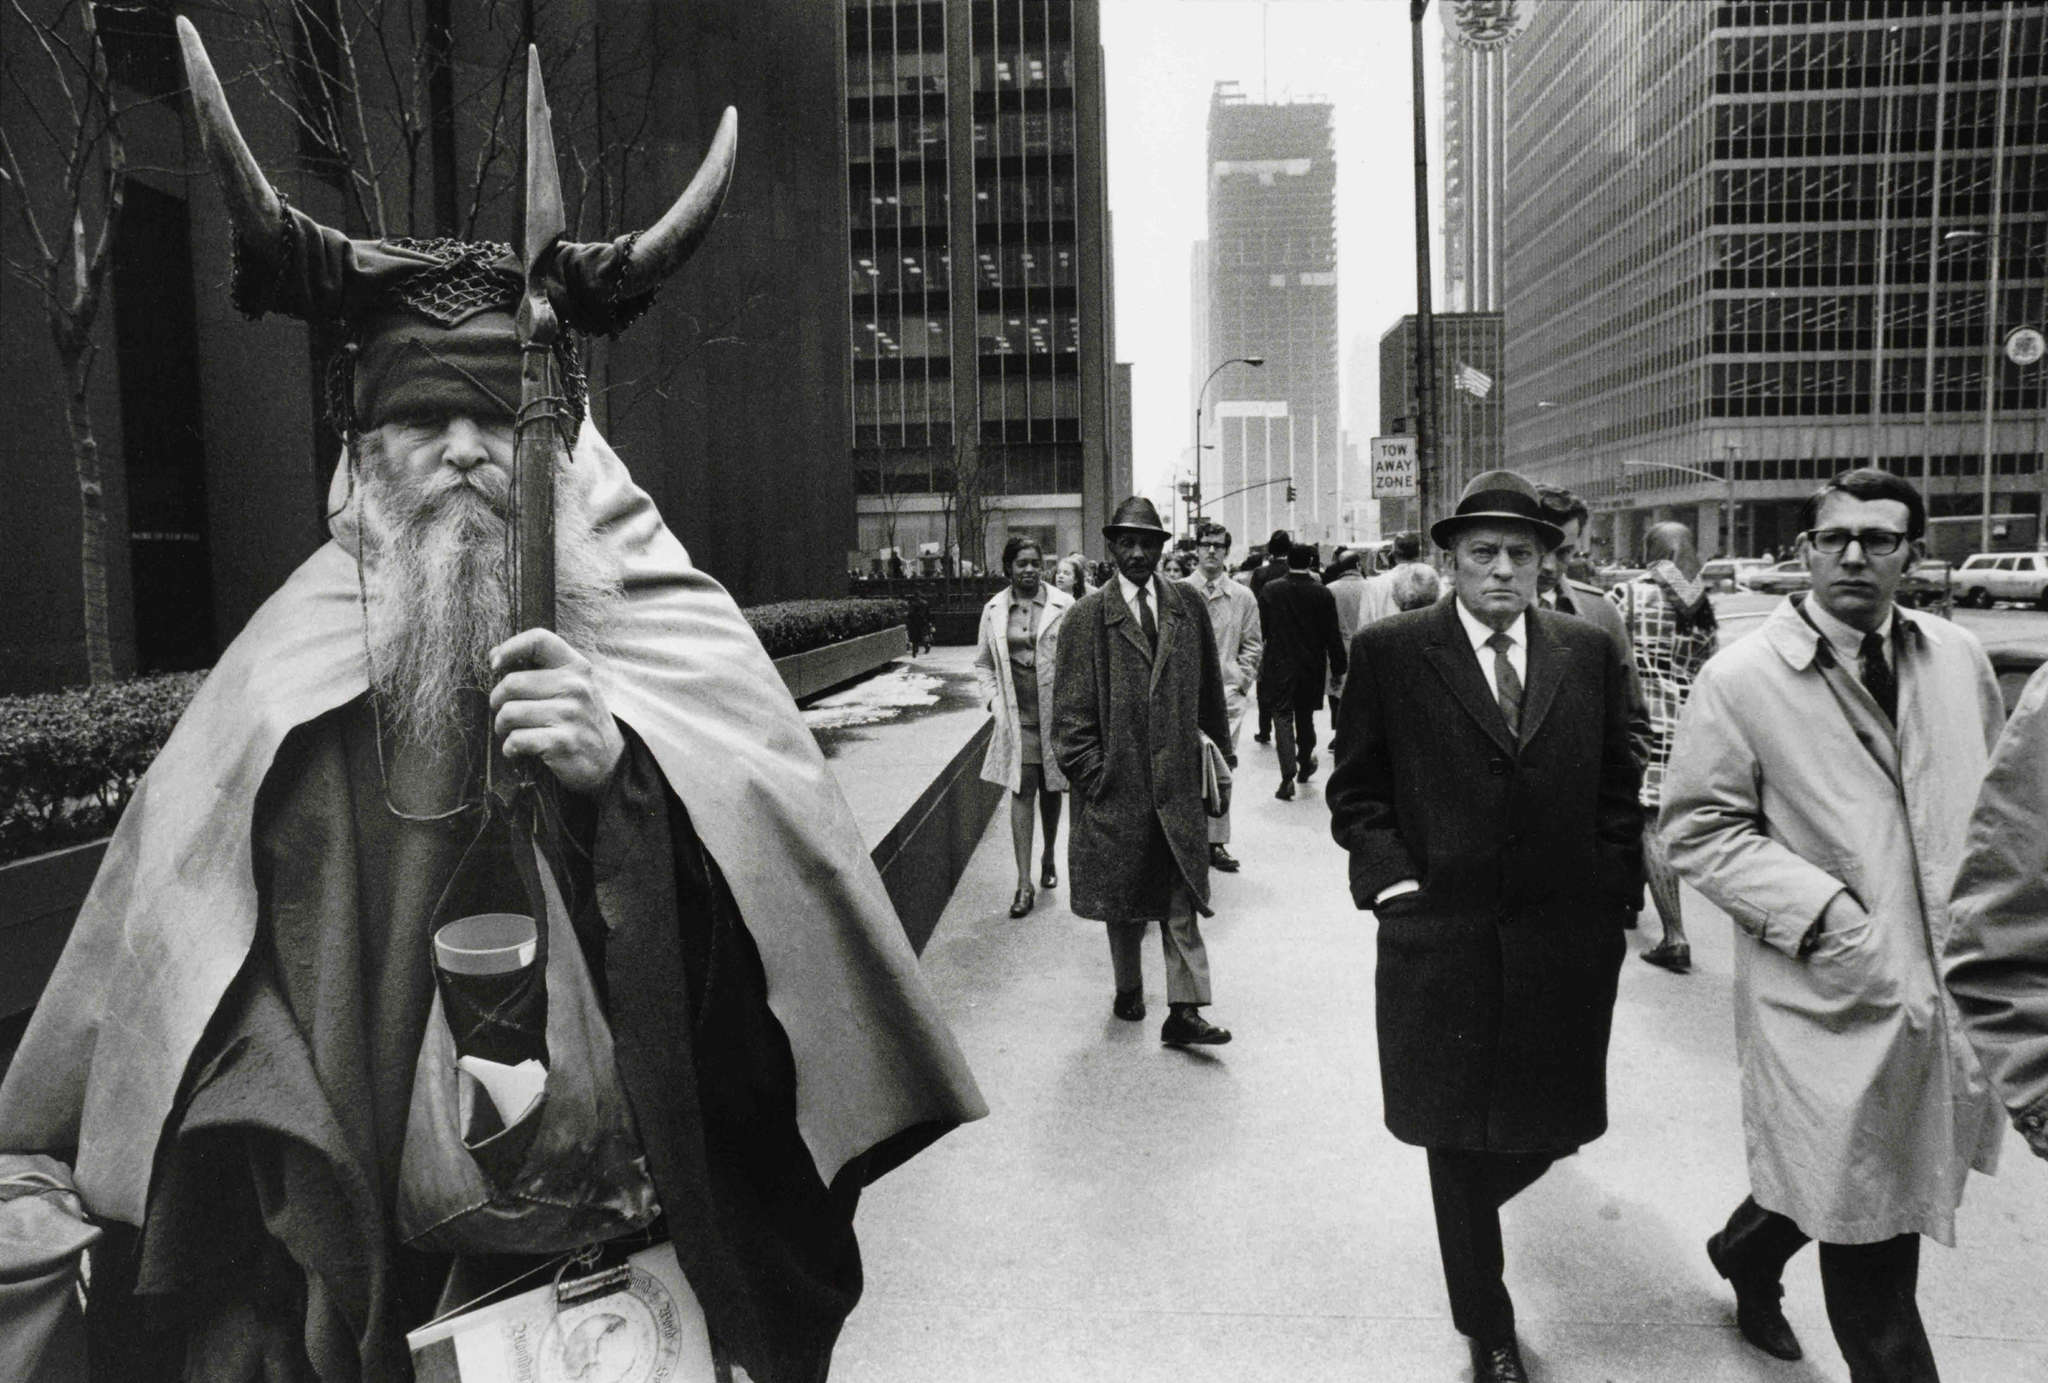 The New York street musician Moondog around 1970. Bowerbird will perform his works.